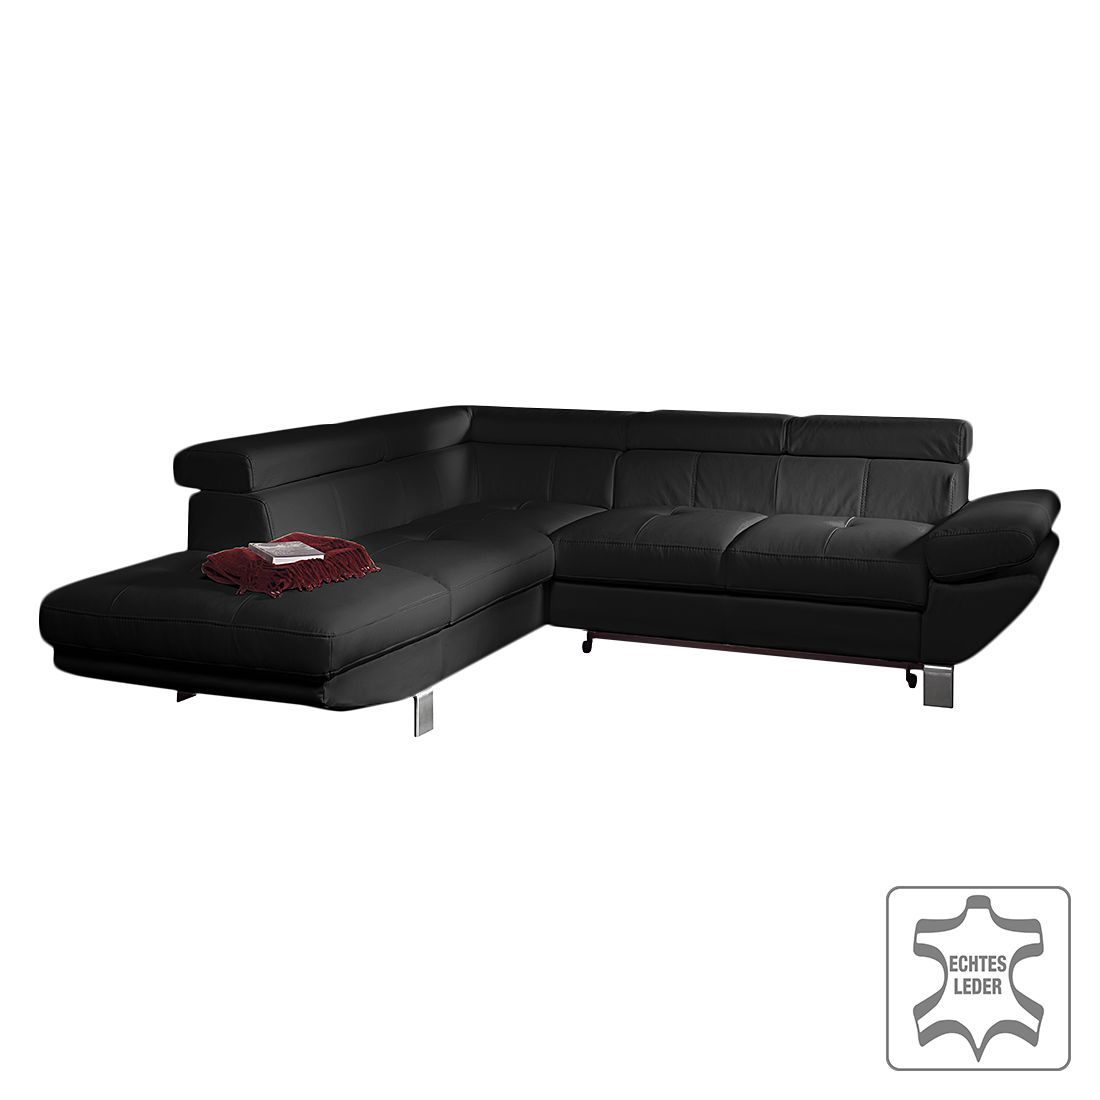 ecksofa kerry mit schlaffunktion echtleder schwarz ottomane davorstehend links cotta. Black Bedroom Furniture Sets. Home Design Ideas